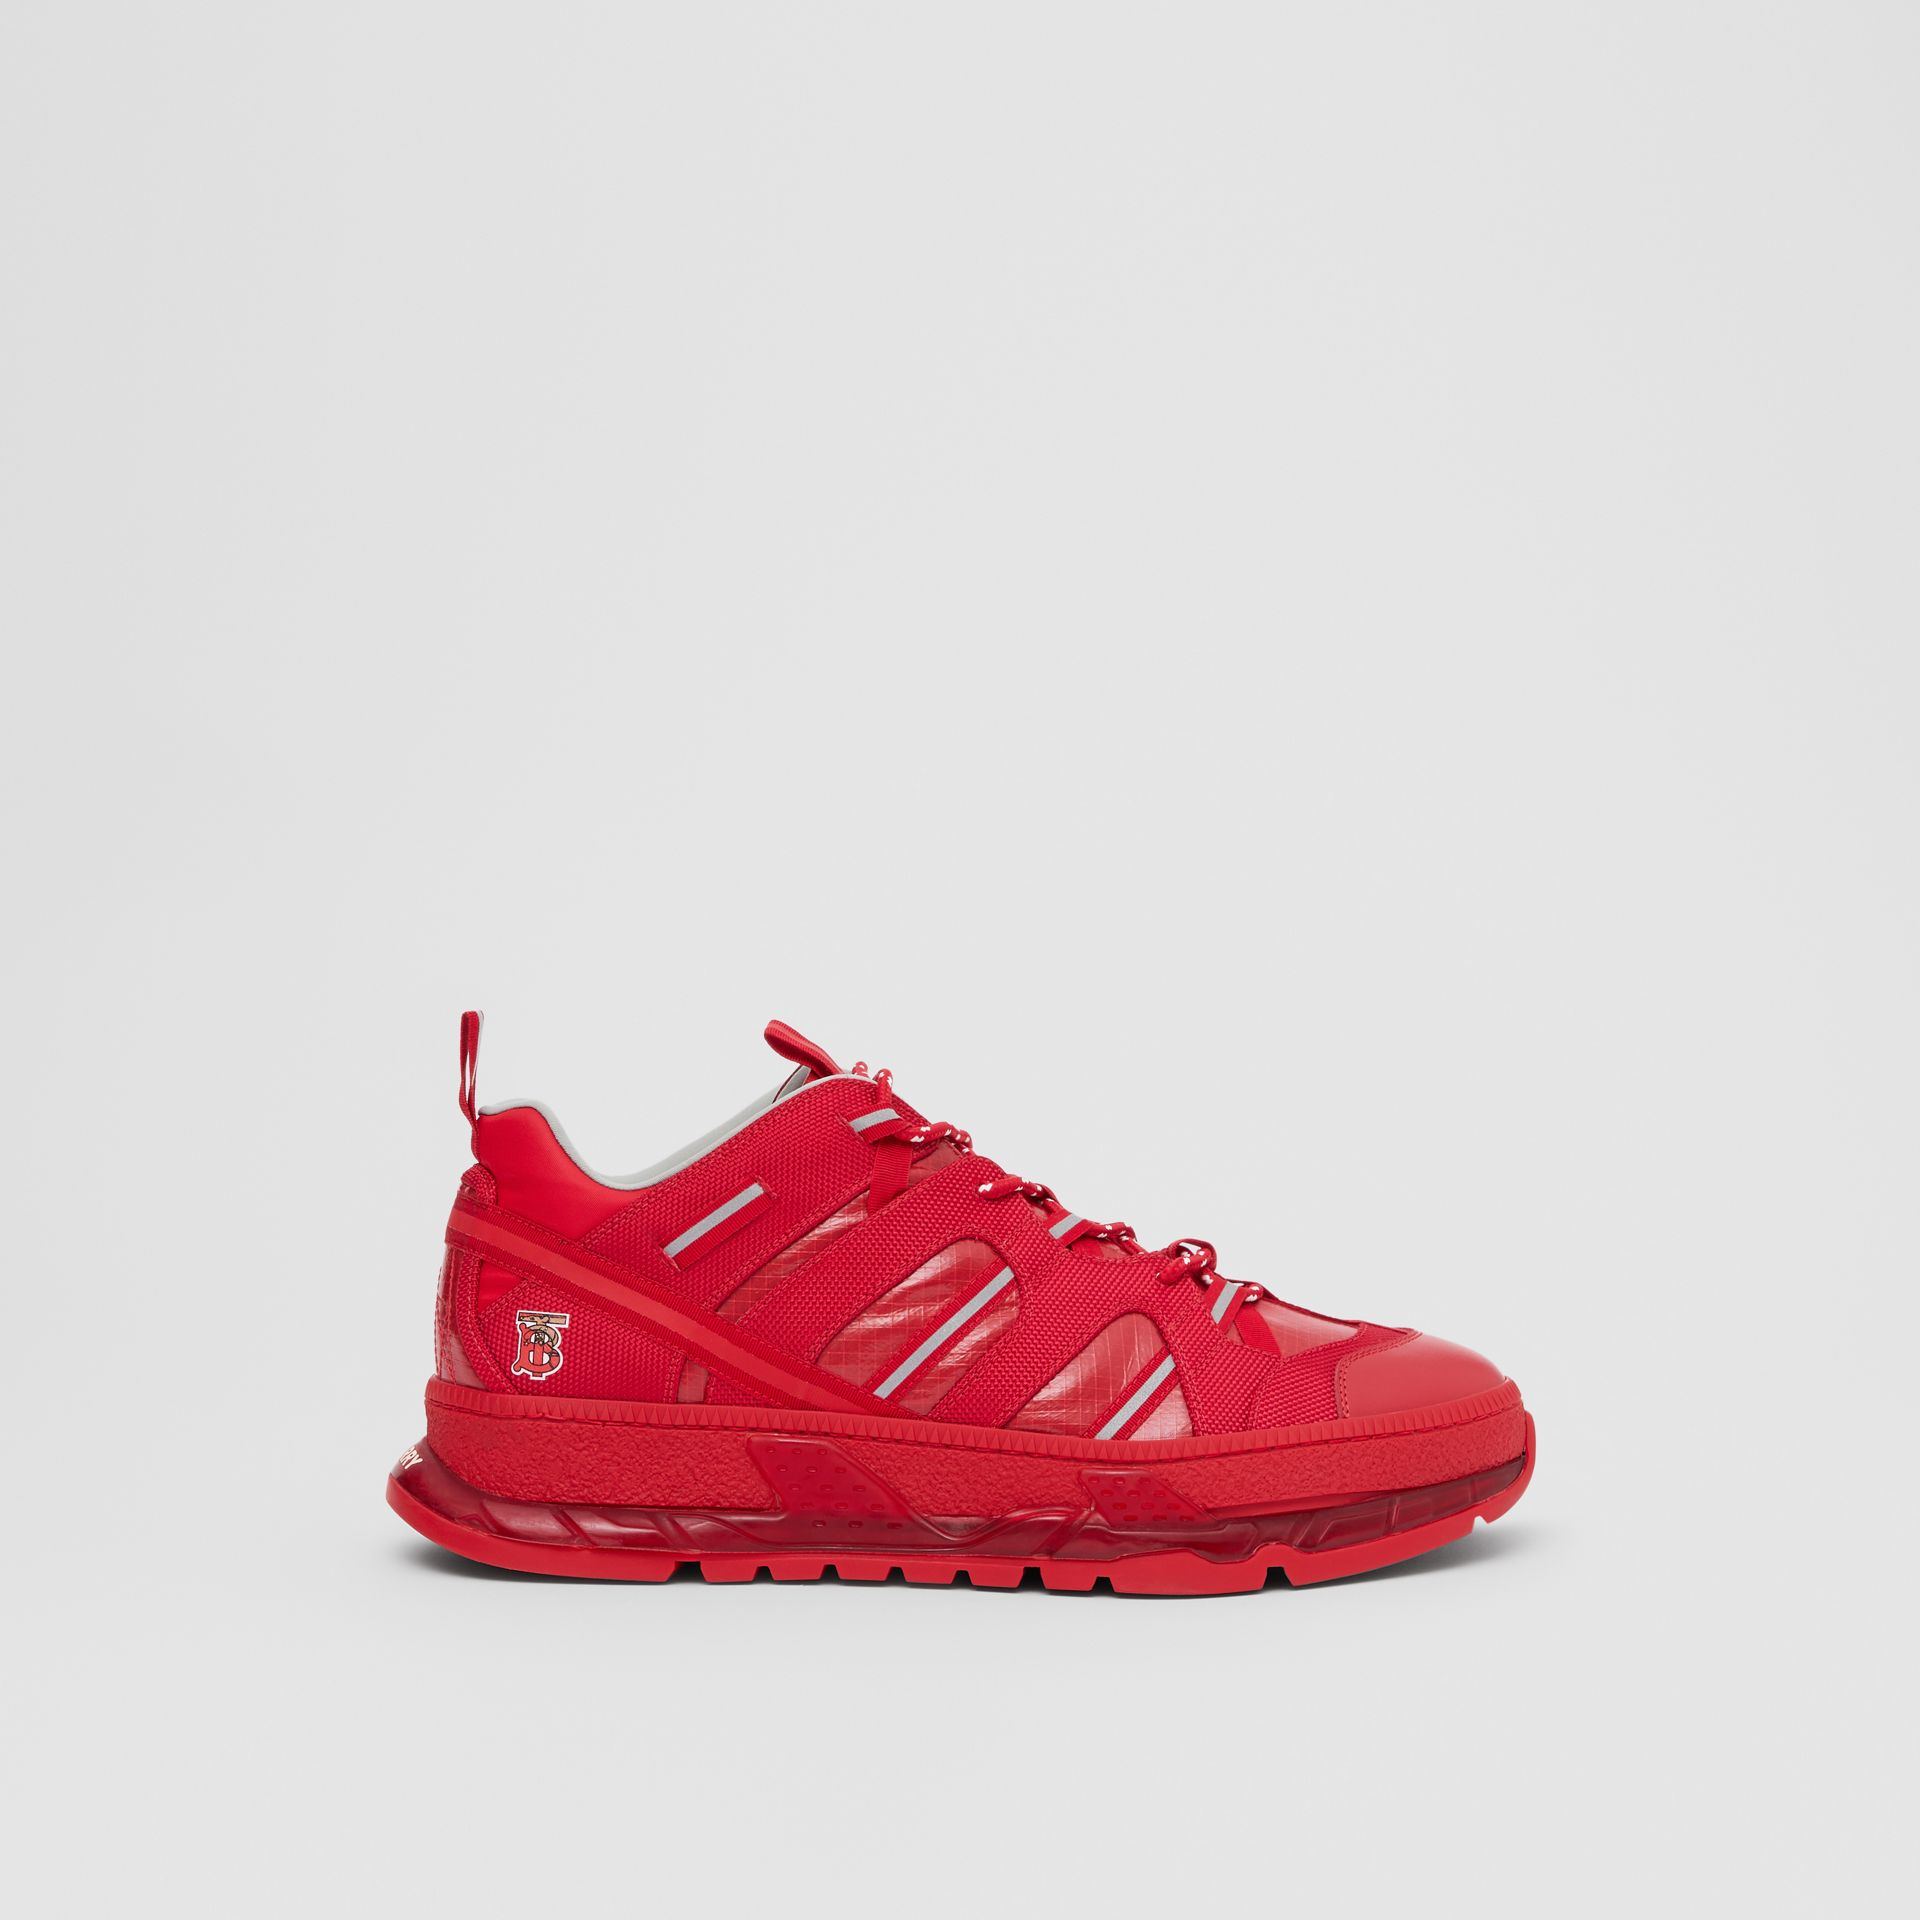 Nylon and Leather Union Sneakers in Bright Red - Women | Burberry - gallery image 2